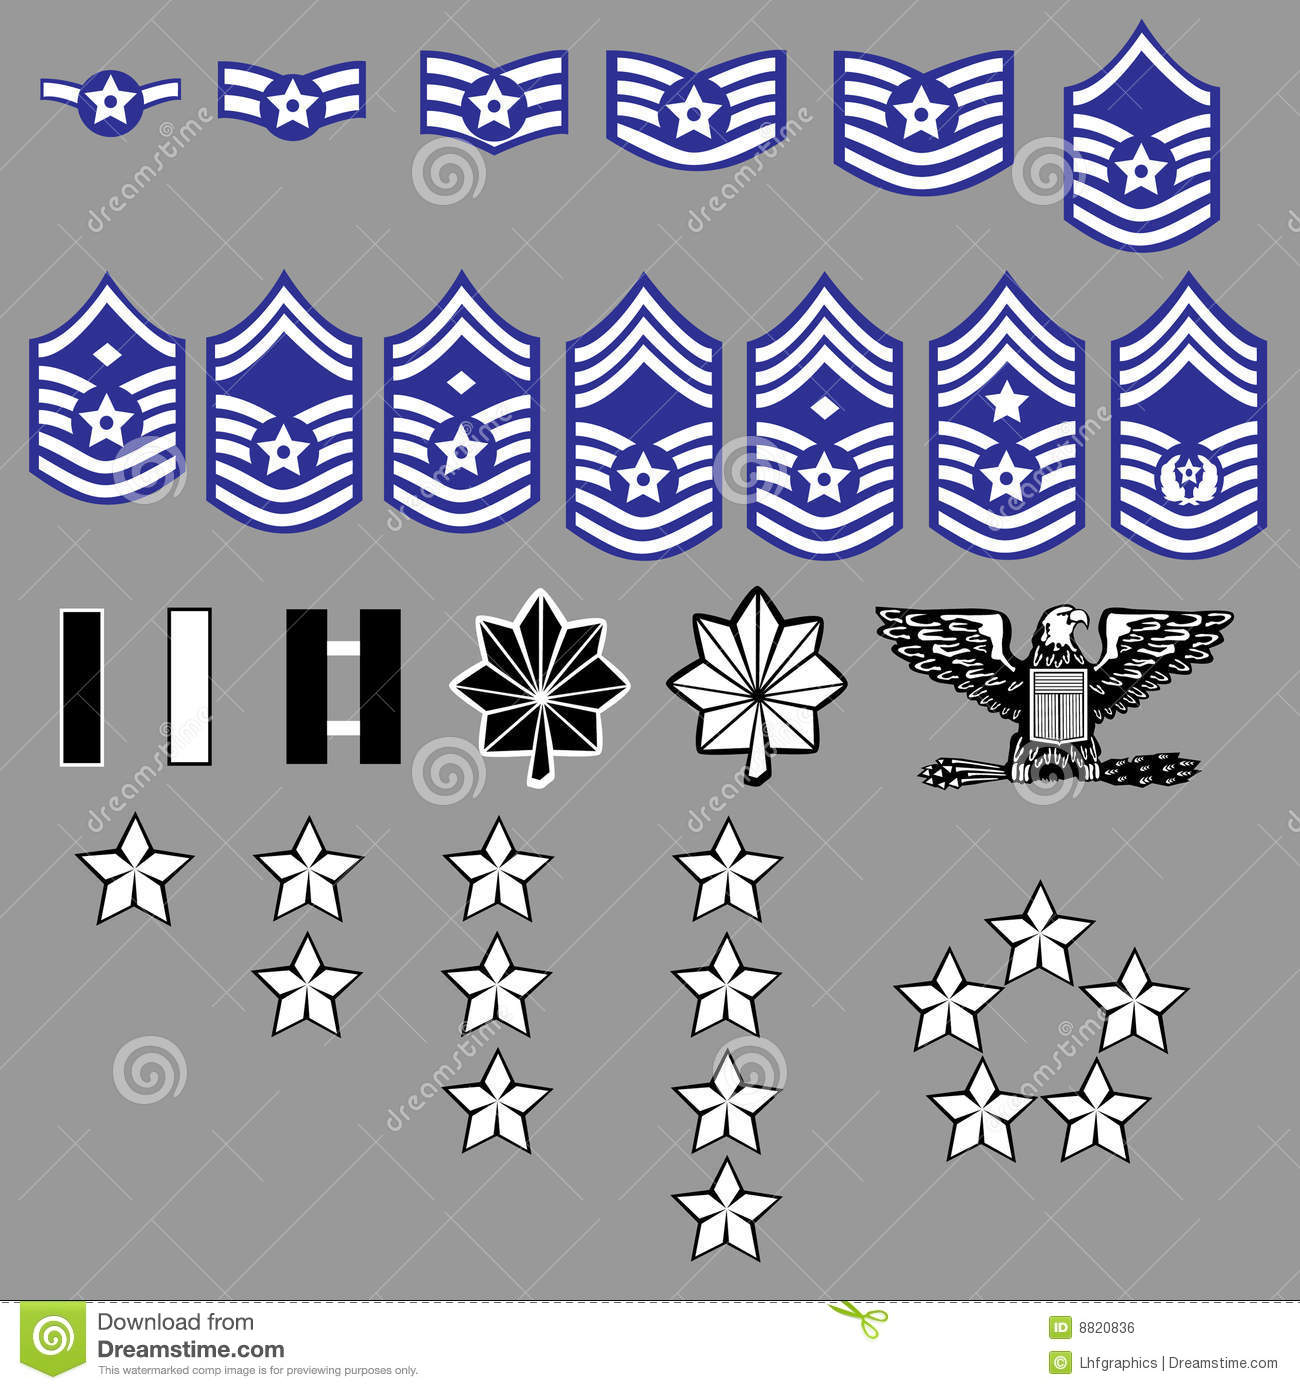 complete set of US Air Force rank insignia including officers and ...